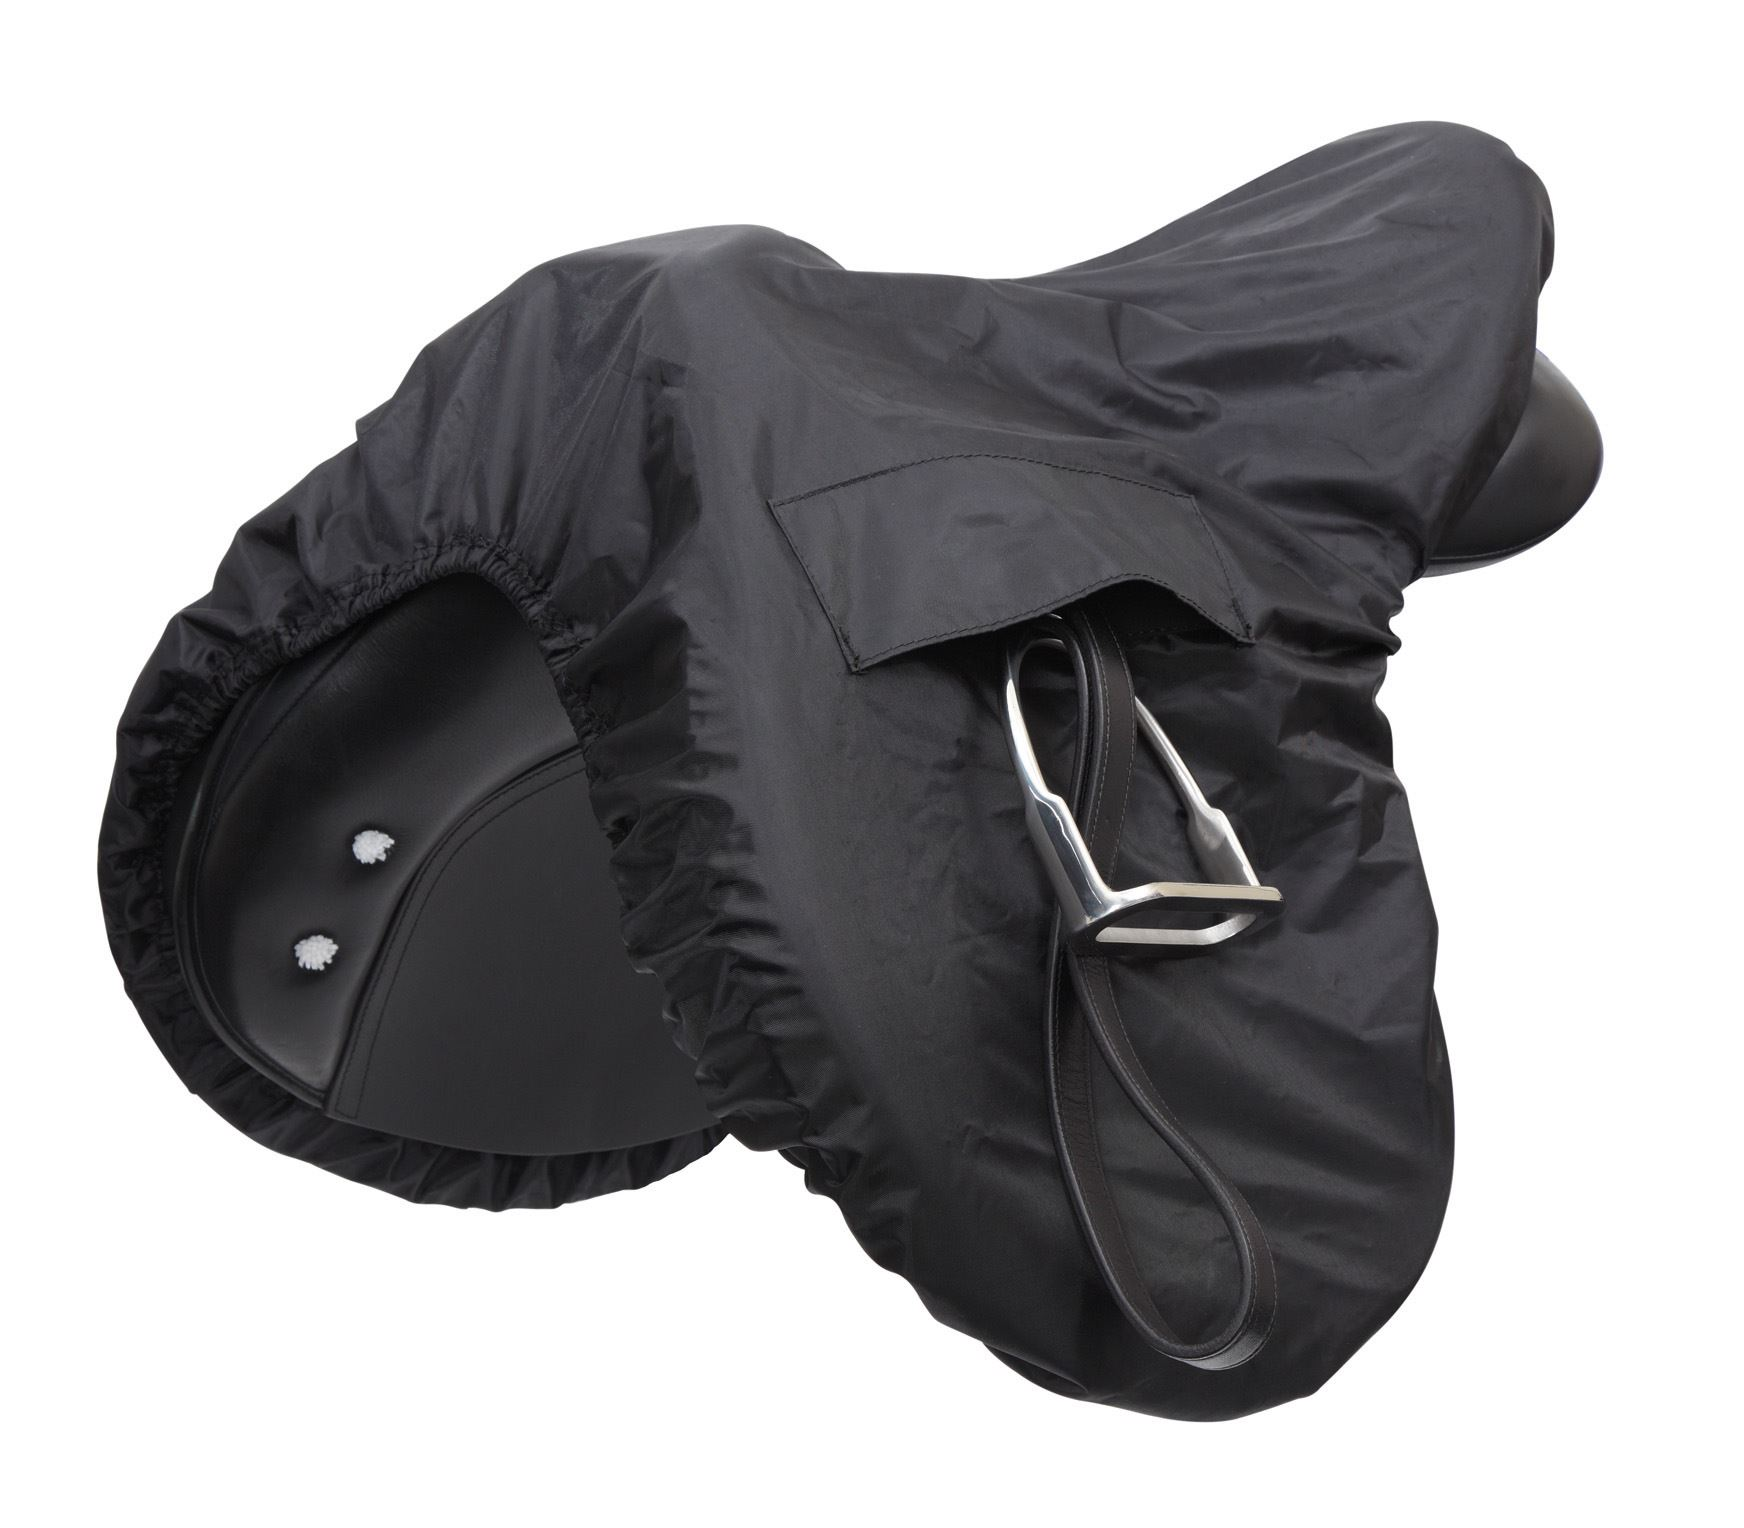 Image result for waterproof saddle cover